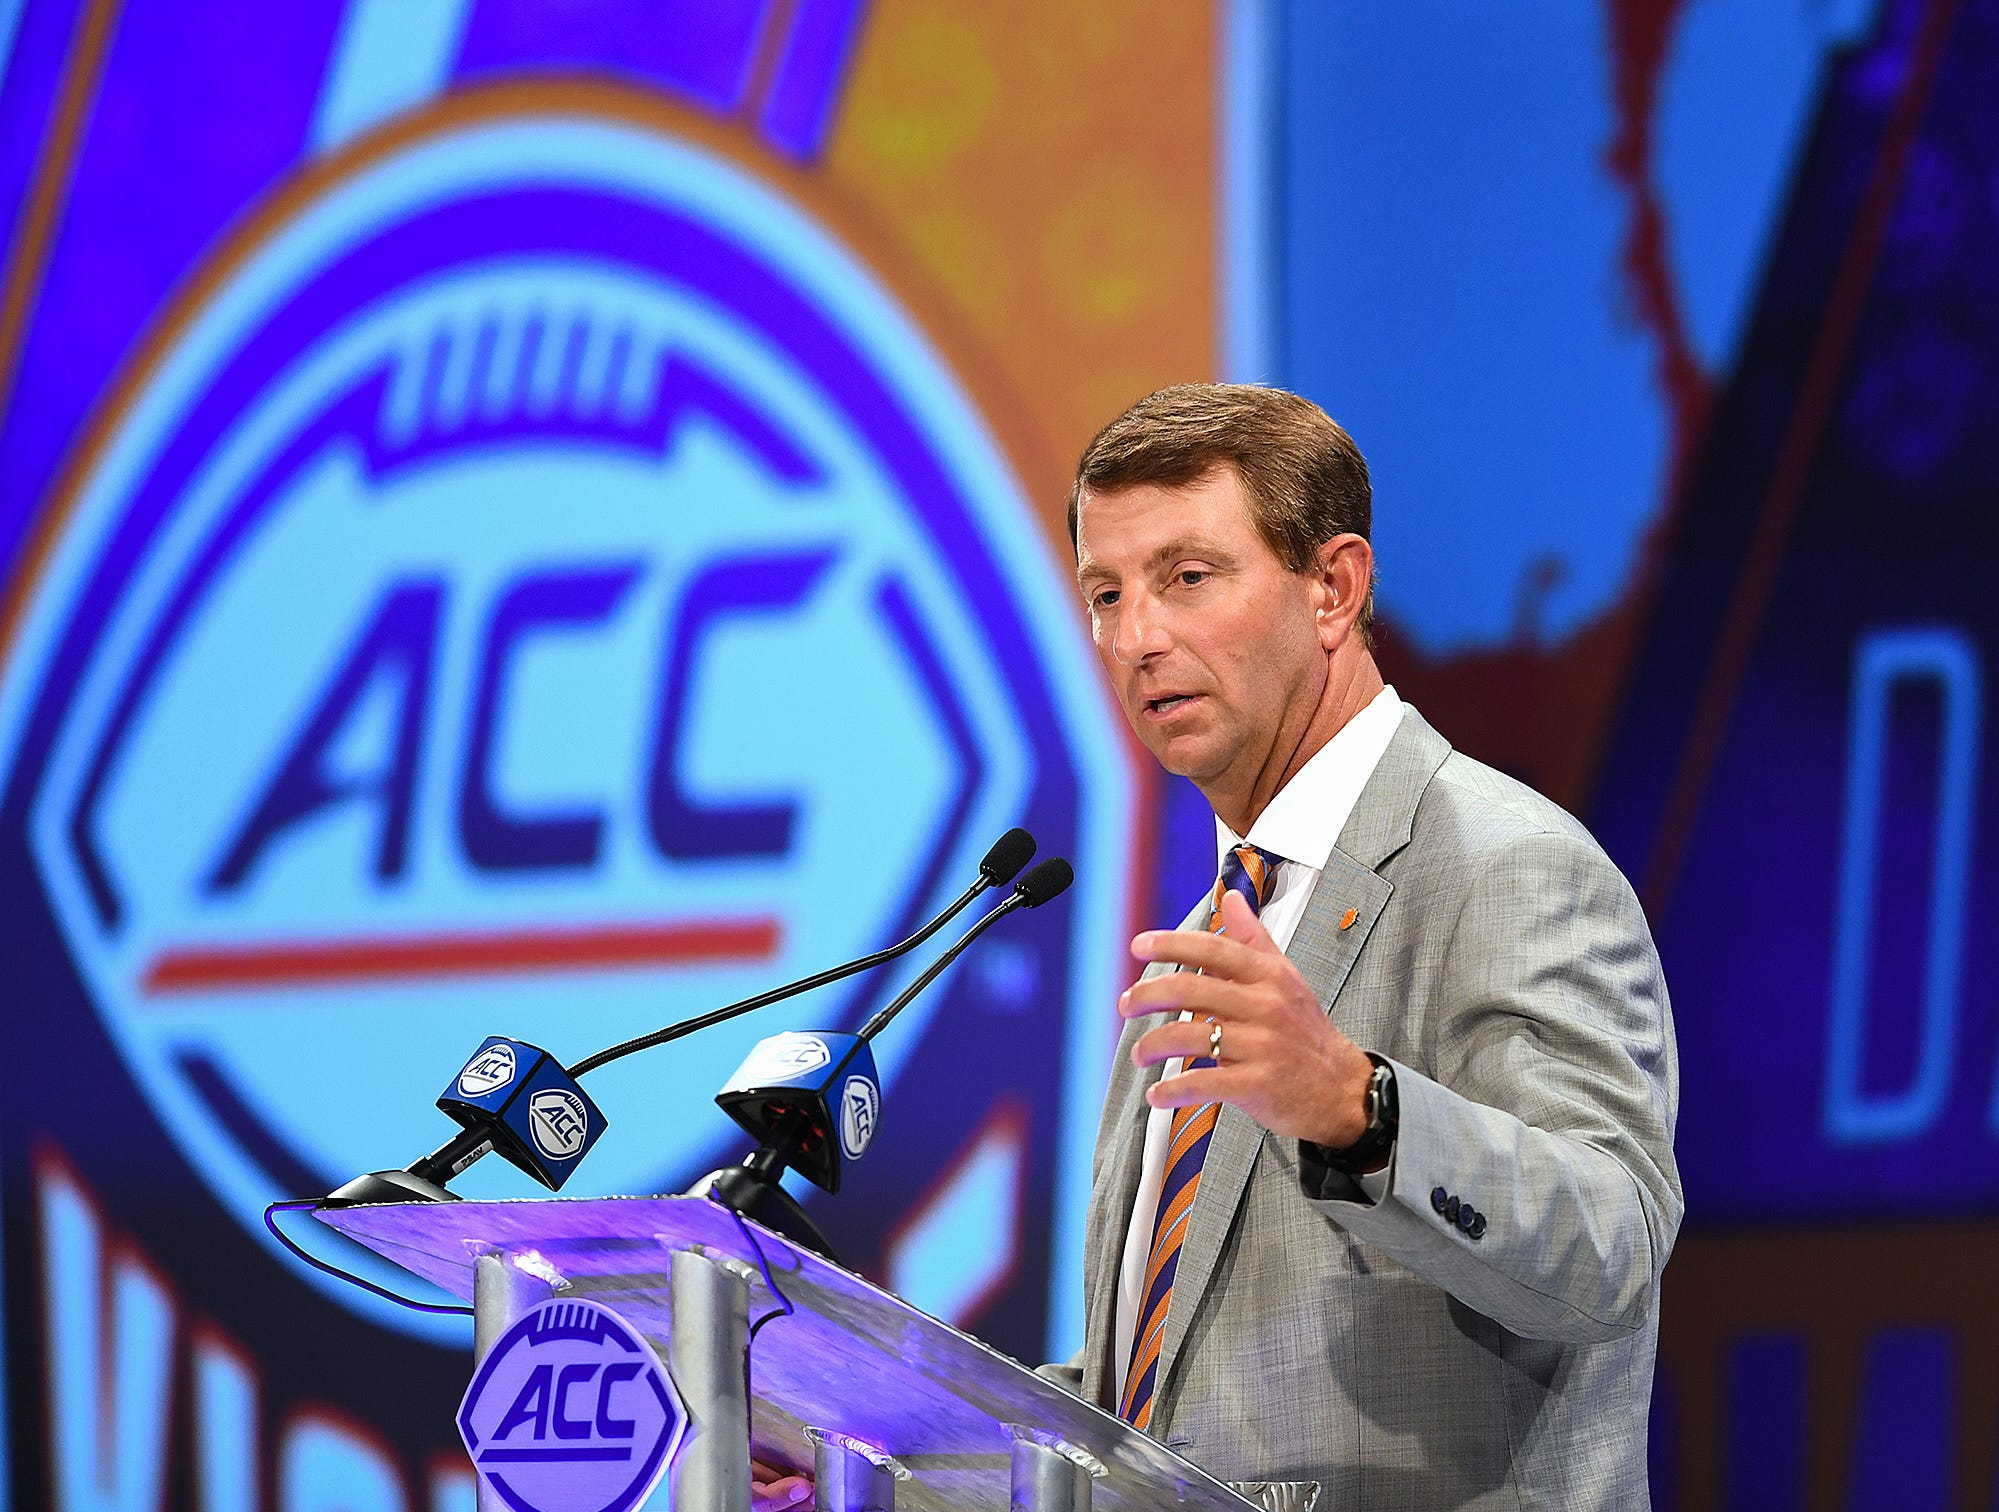 Clemson head coach Dabo Swinney answers questions at the ACC Football Kickoff in Charlotte, N.C., Thursday, July 19, 2018.